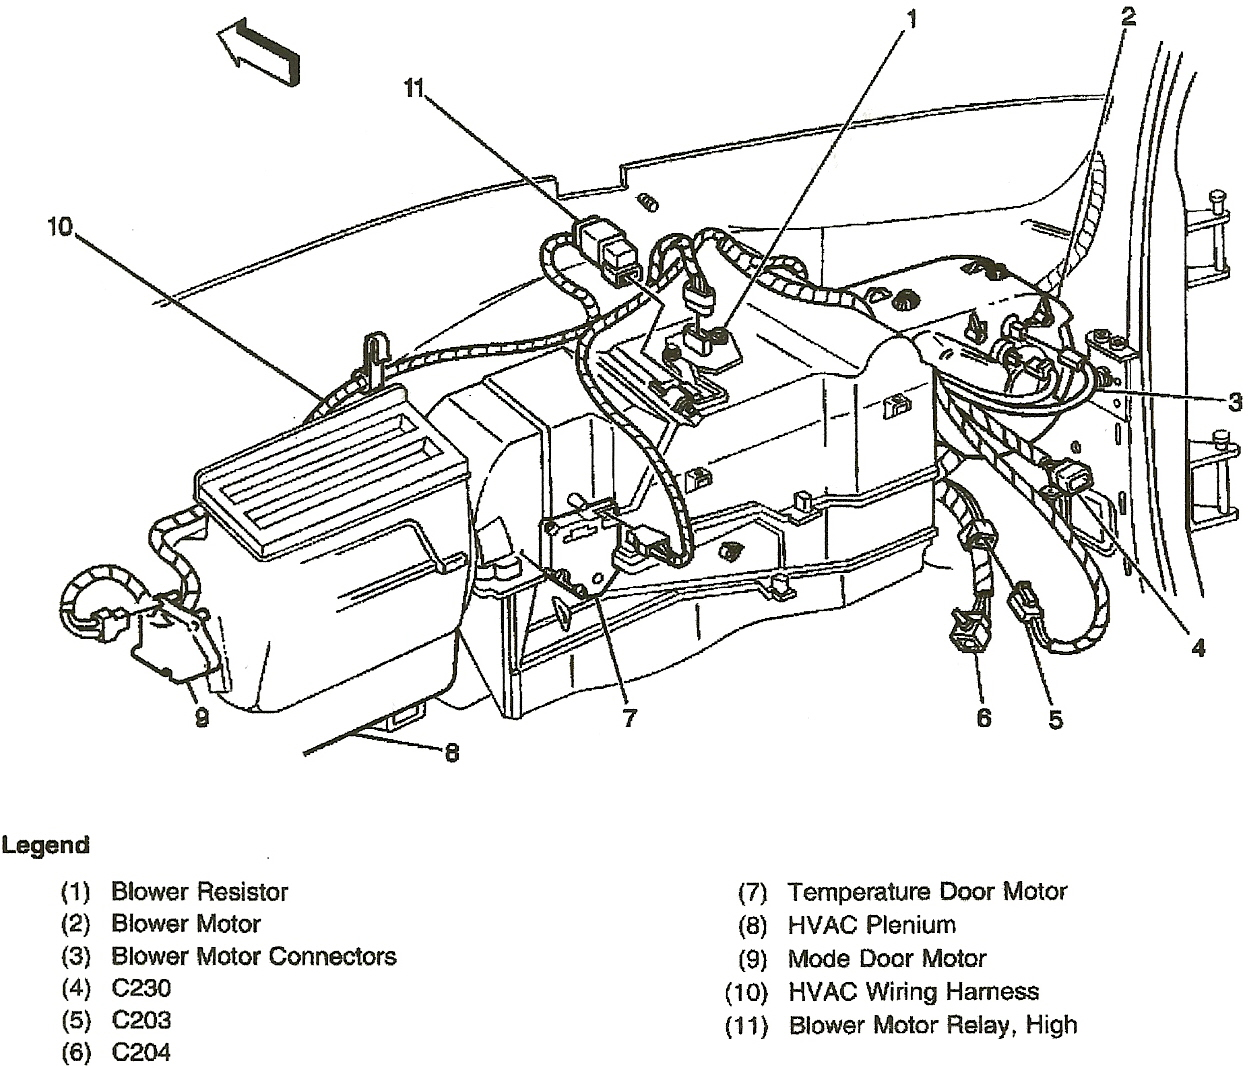 Wiring Diagram For Blower Motor In 2004 Chevy Impala Motor